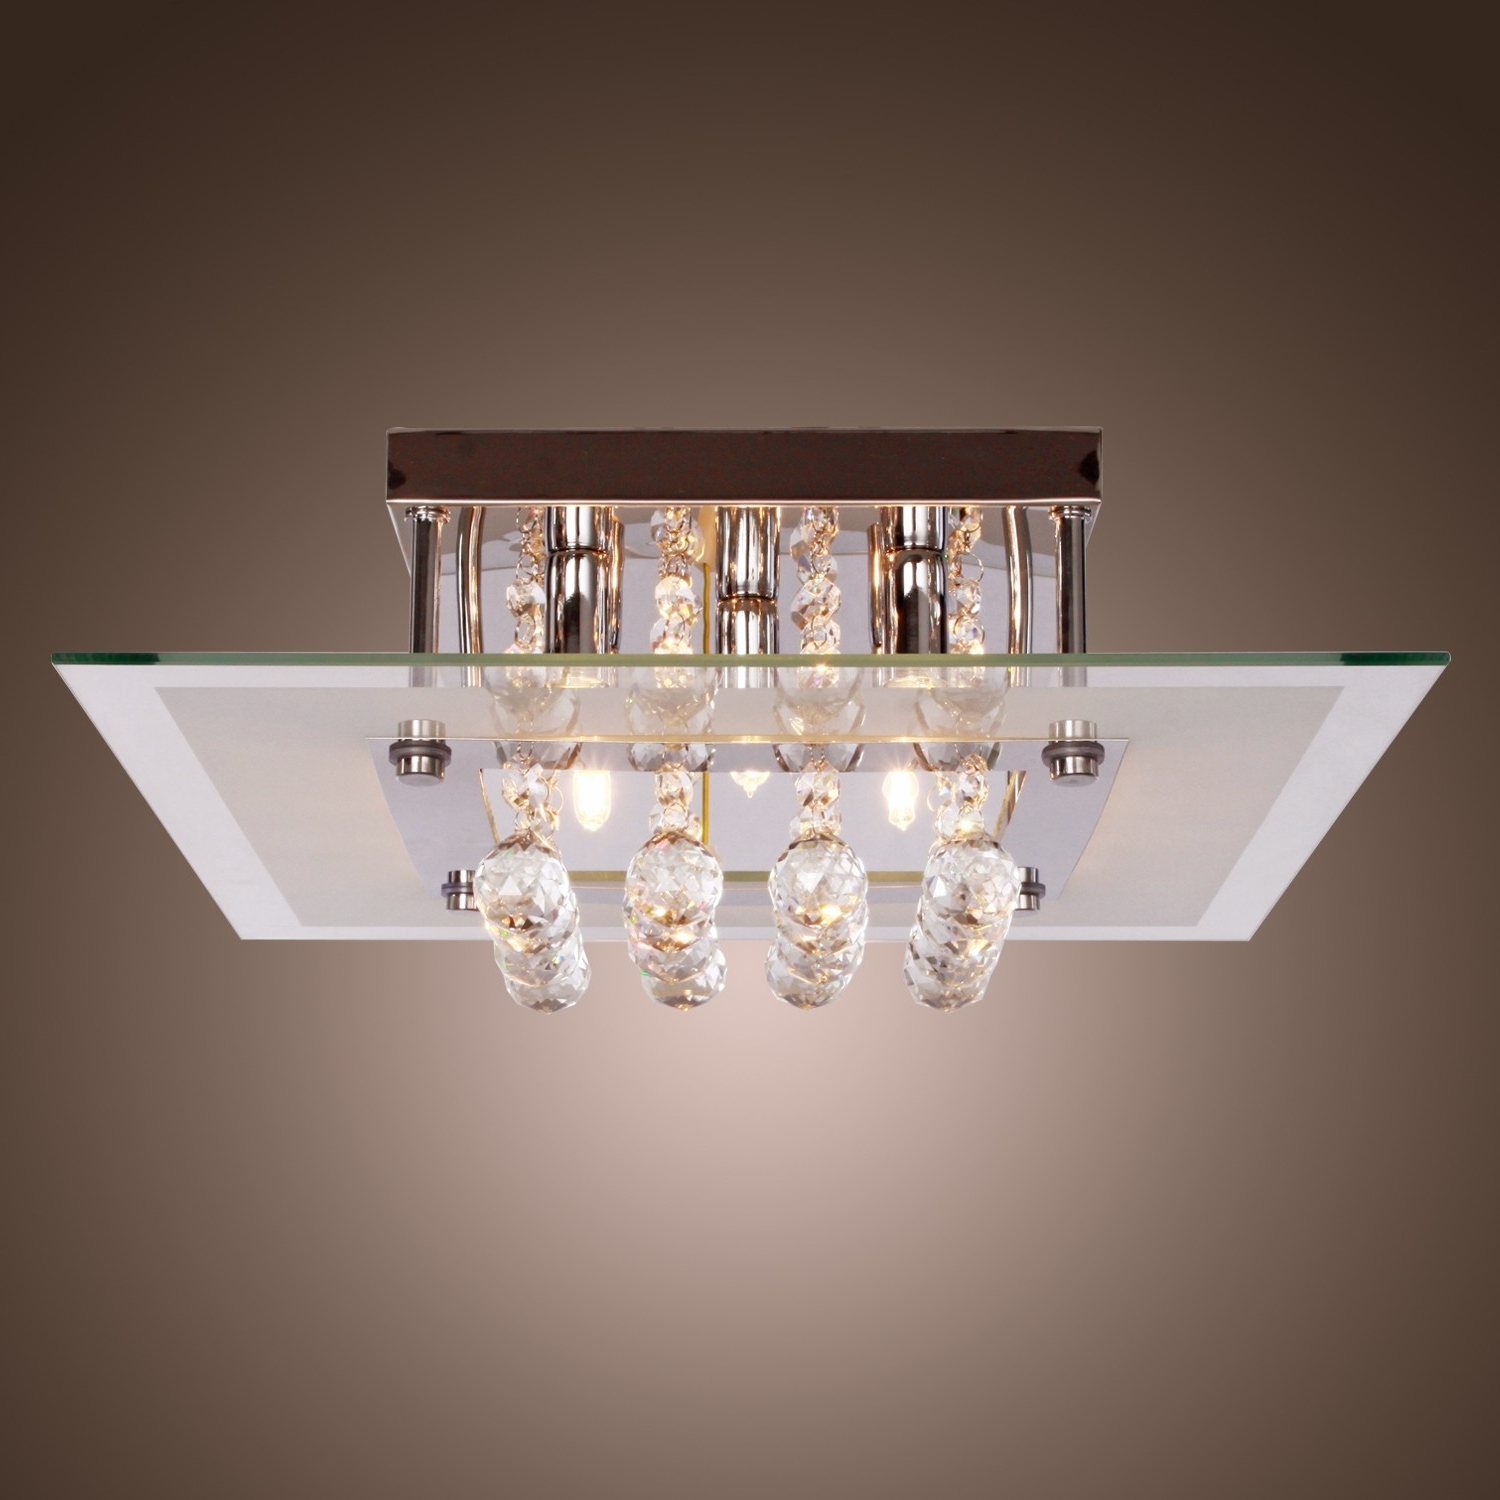 2018 Wall Mounted Bathroom Chandeliers Intended For Light : Wall Mounted Ceiling Lights (View 1 of 15)